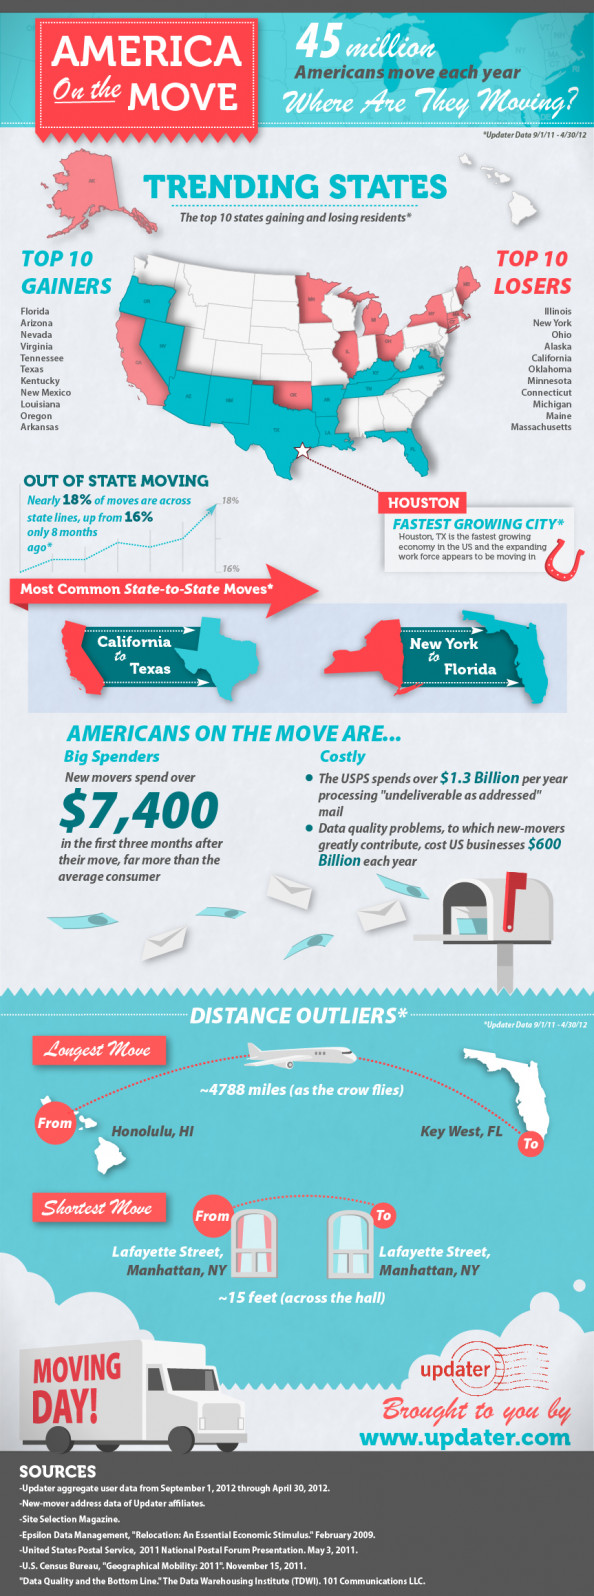 America on the Move Infographic